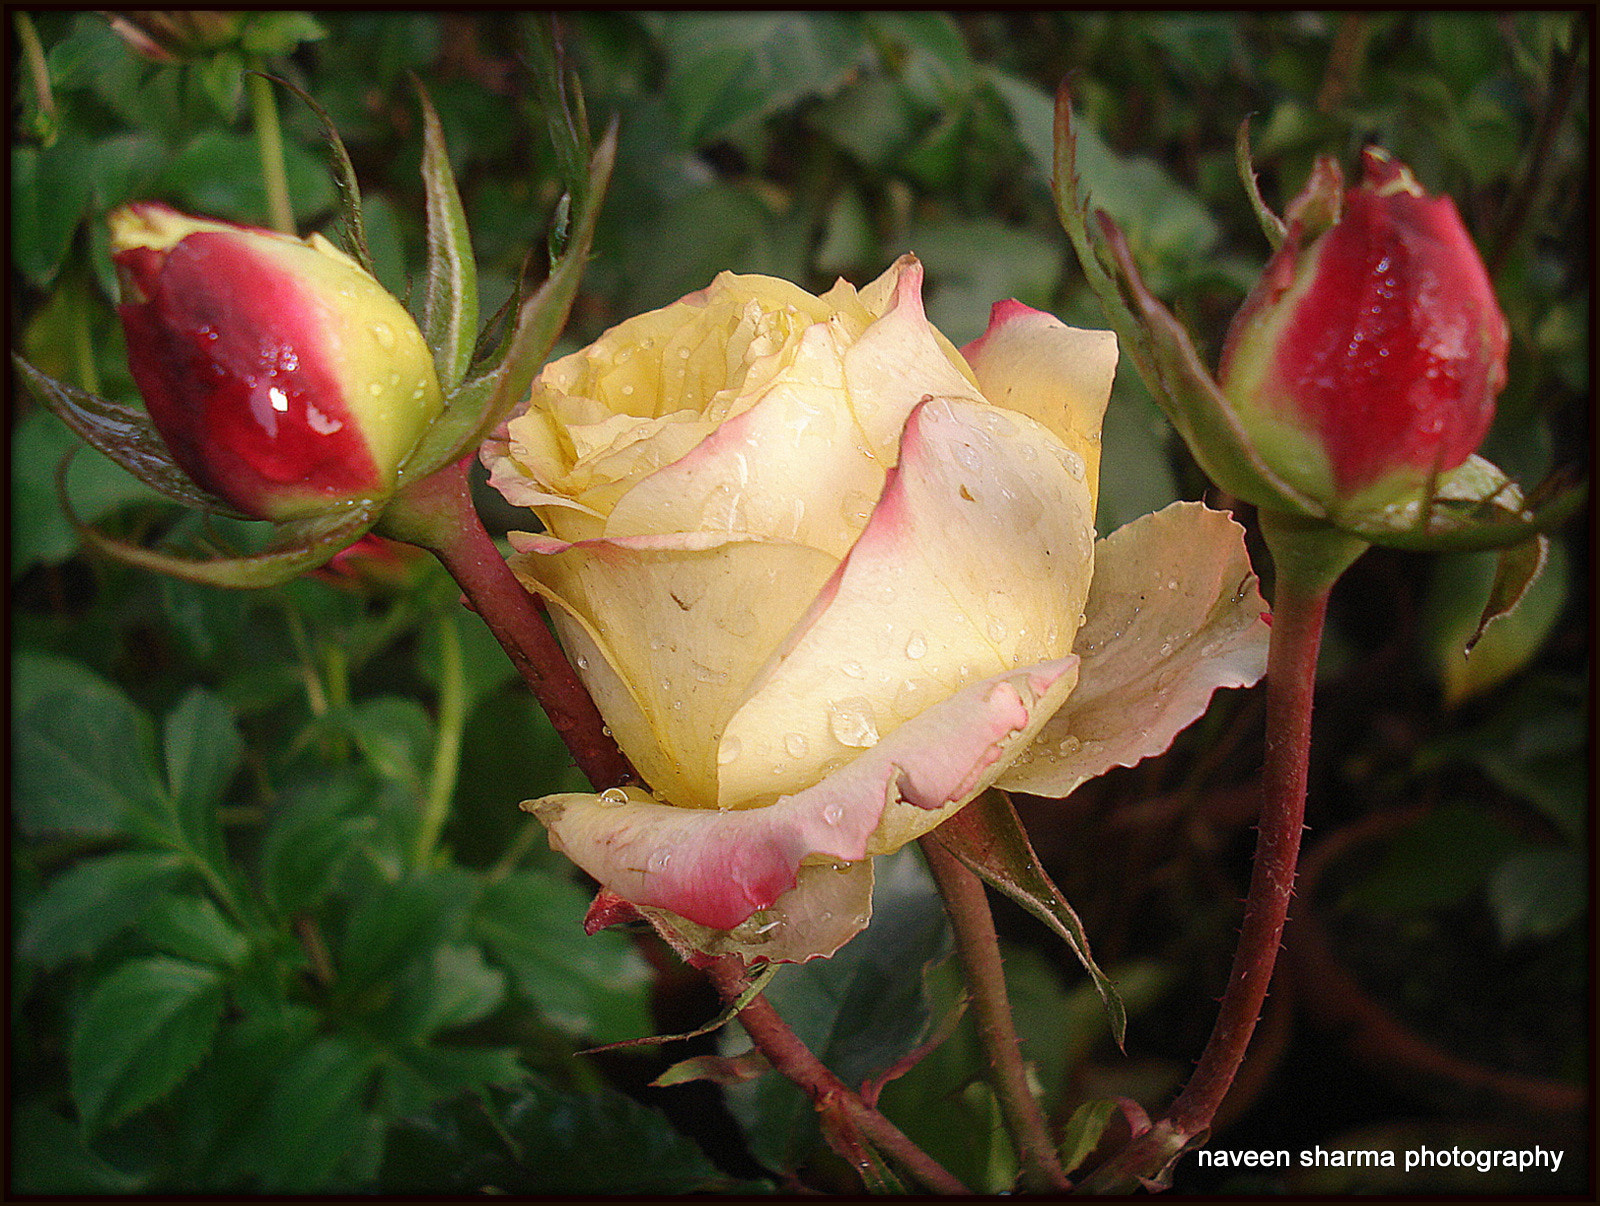 Photograph lovely rose n buds by naveen sharma on 500px